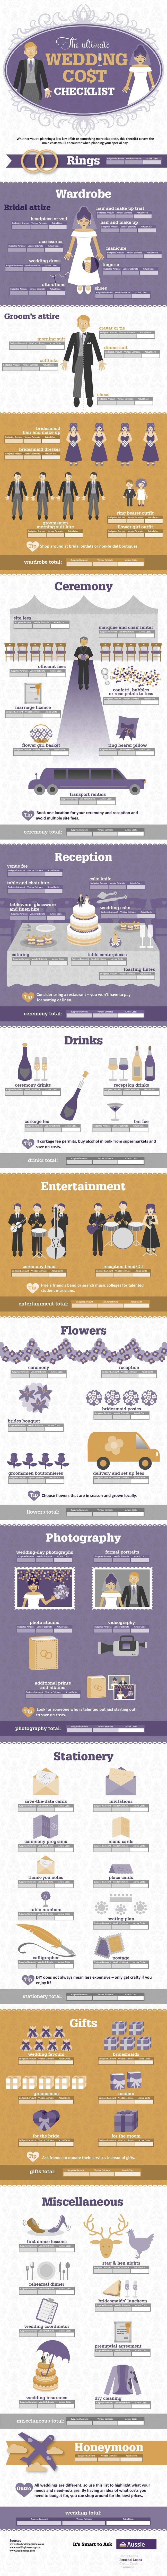 #INFOgraphic > #Wedding Budget Template: Leave the boring spreadsheets aside and use this nifty template to plan and budget your wedding cost.  > http://infographicsmania.com/wedding-budget-template/